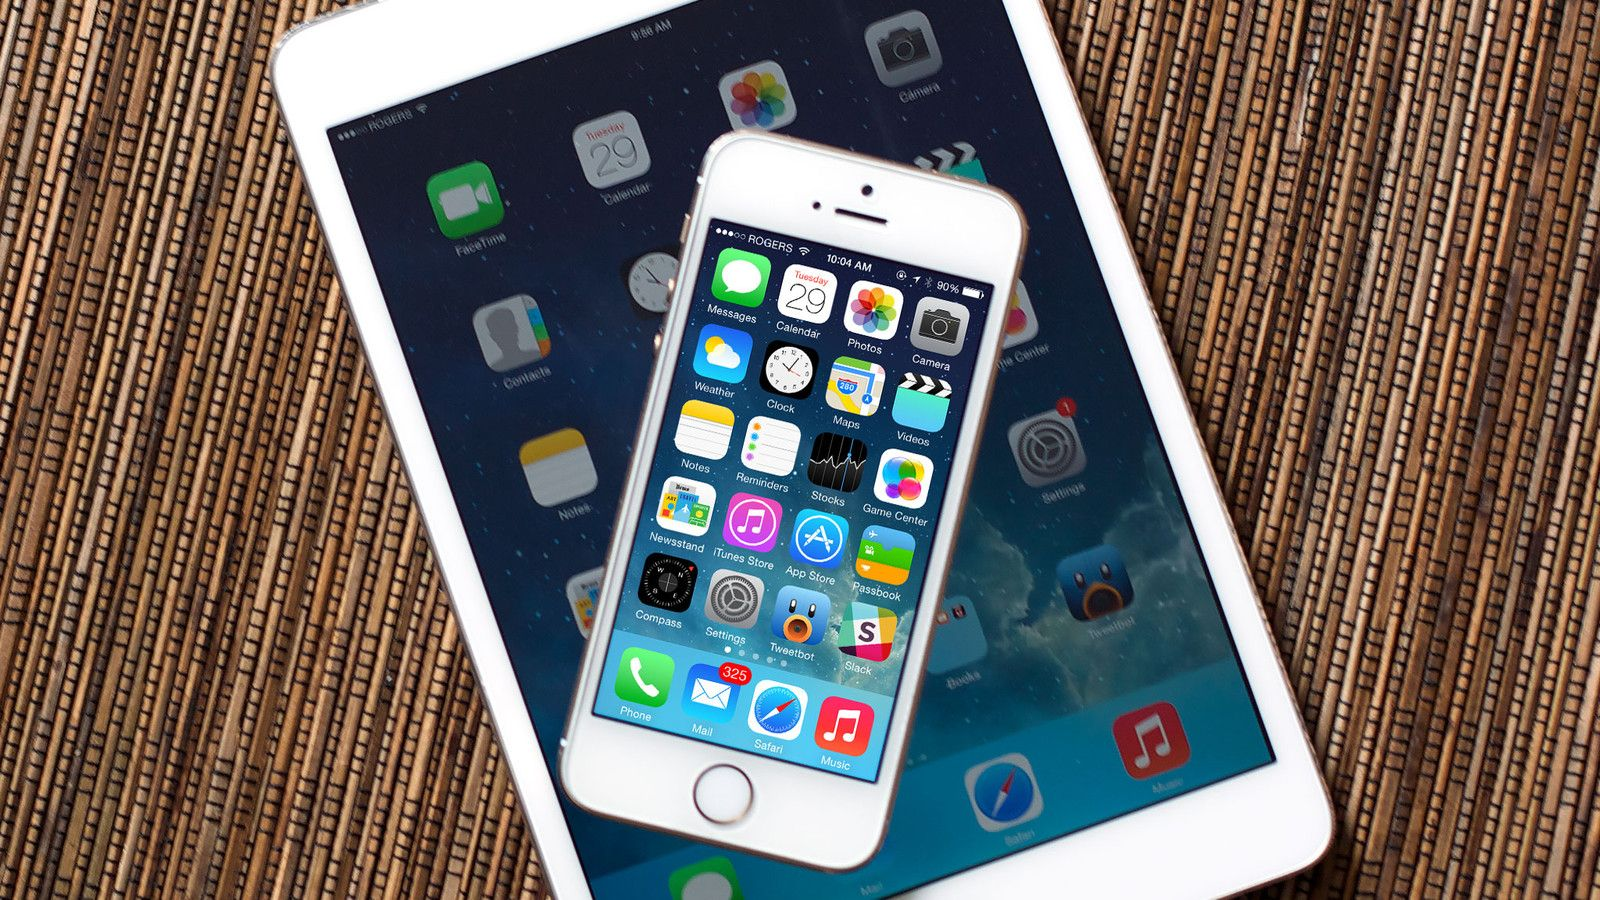 Learn to upgrade your iPhone or iPad to the latest version